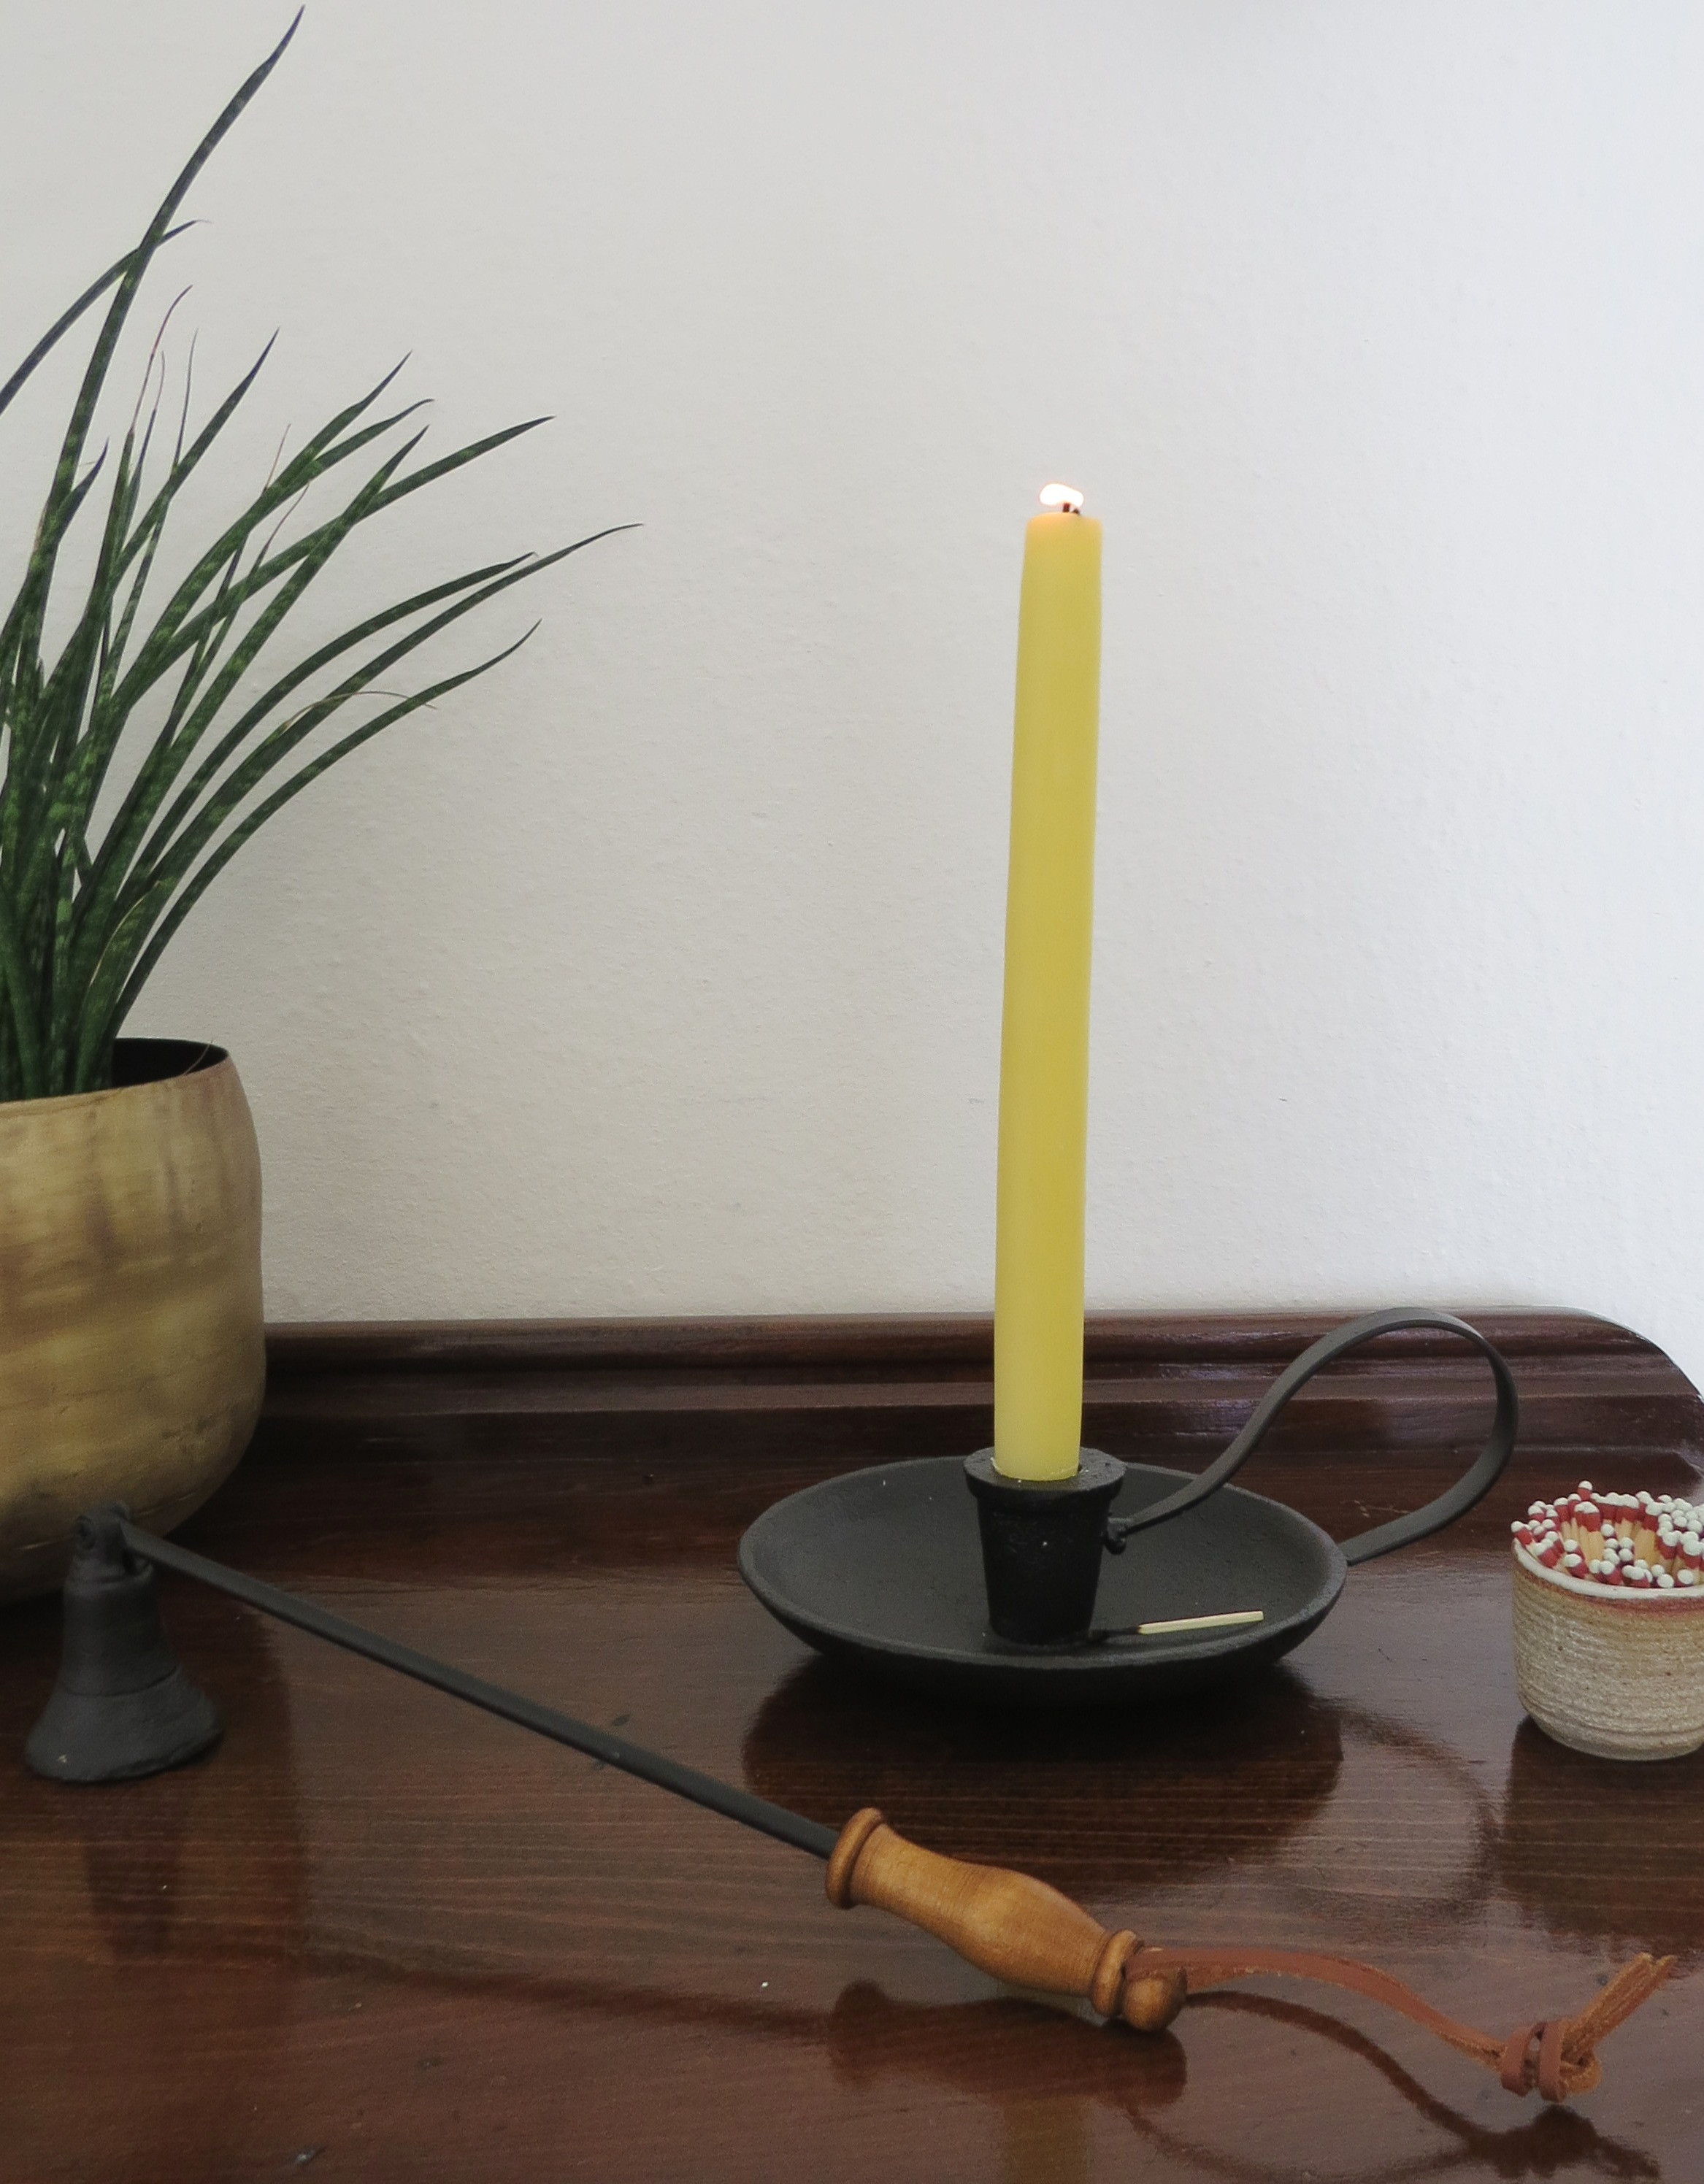 cast iron candlestick with beeswax taper candle